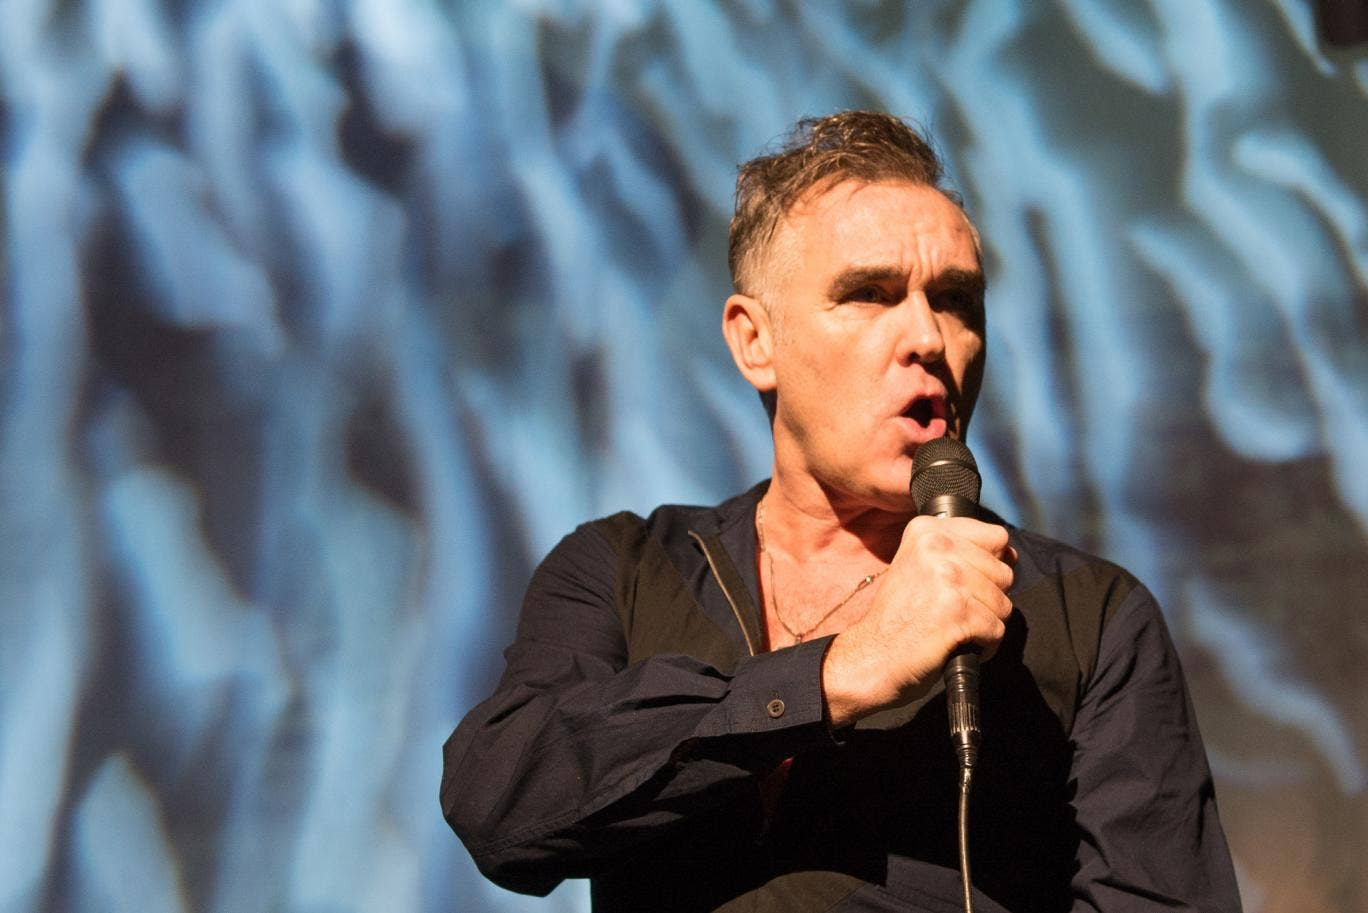 Morrissey is still suffering from a bleeding stomach ulcer and has had to cancel further shows